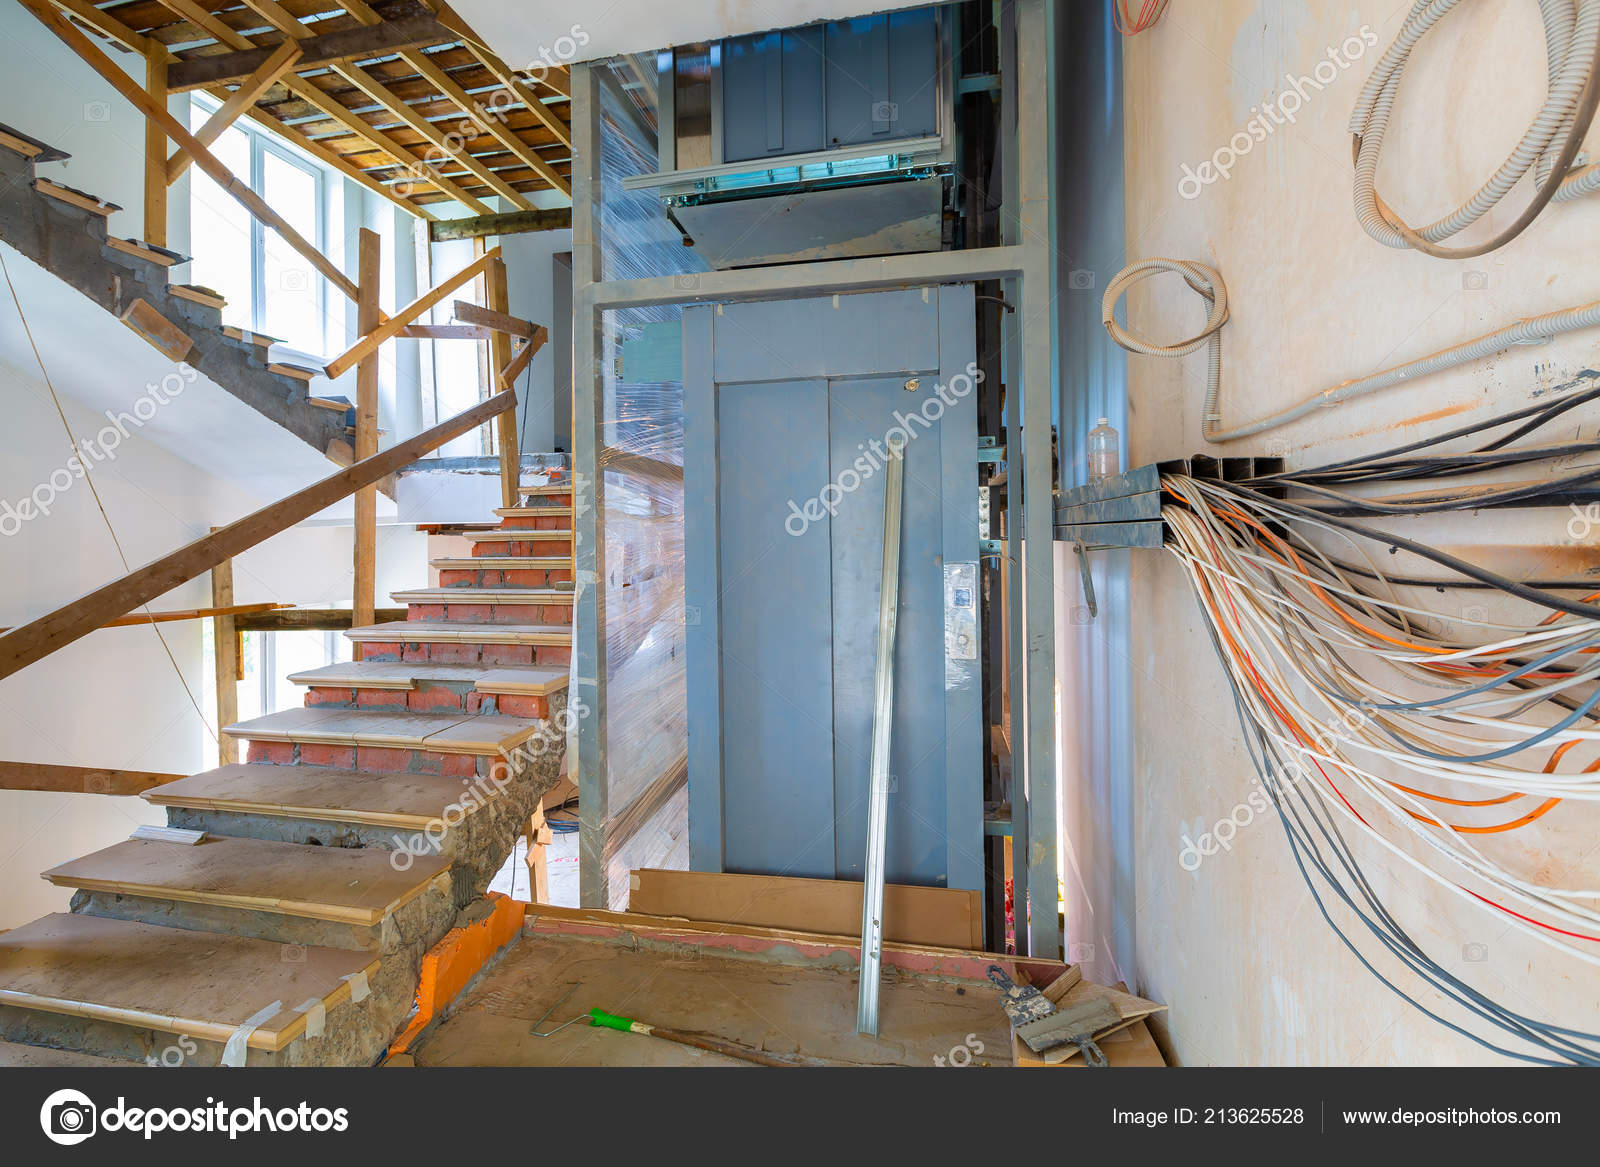 Wall with wires, stairs with temporary wooden railing and